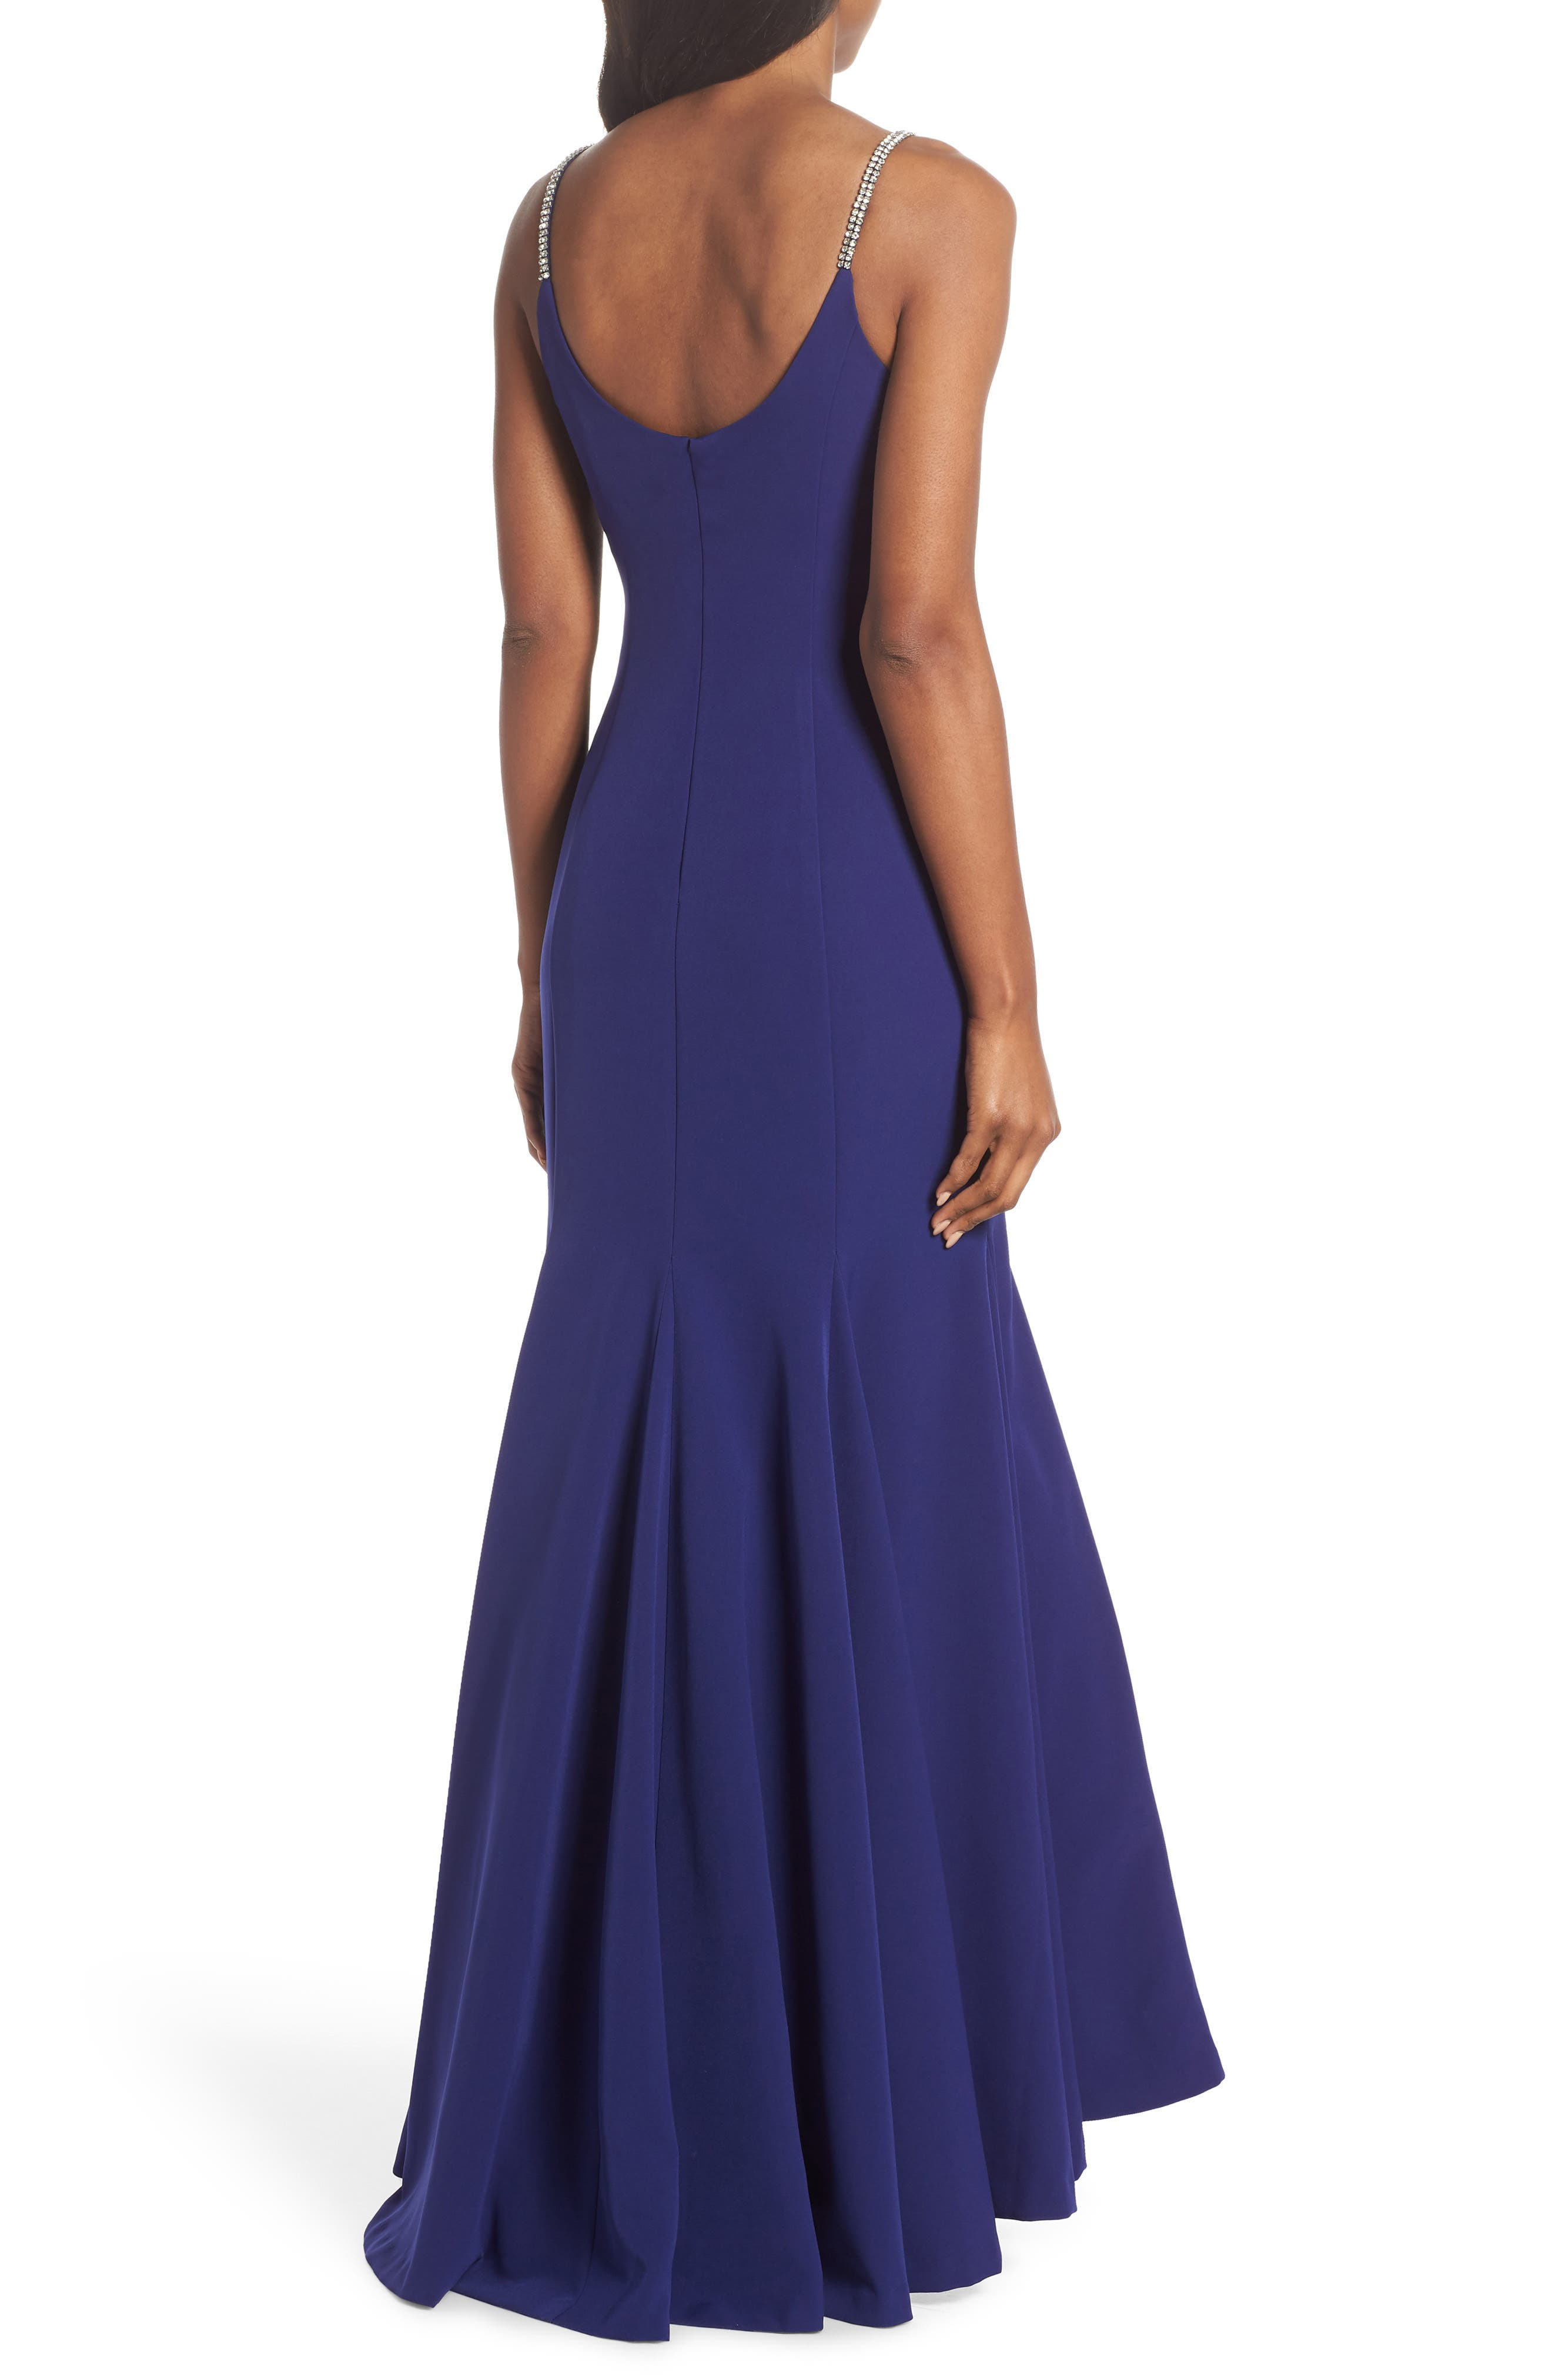 VINCE CAMUTO,                             Laguna Crystal Strap Mermaid Gown,                             Alternate thumbnail 2, color,                             430